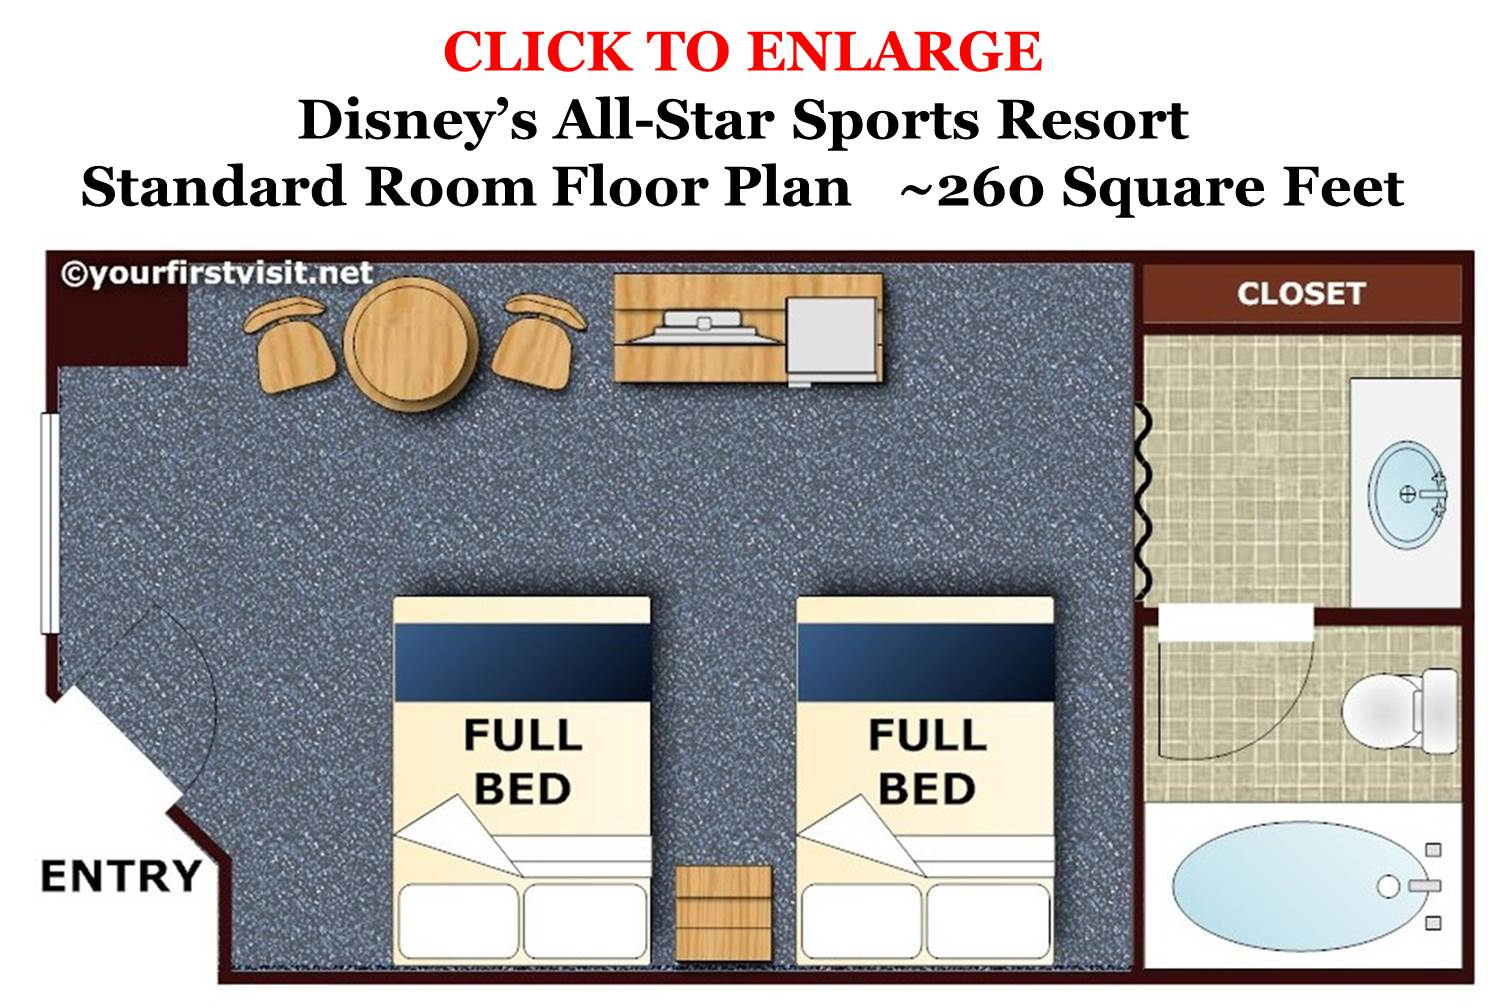 All-Star Sports Floor Plan from yourfirstvisit.net